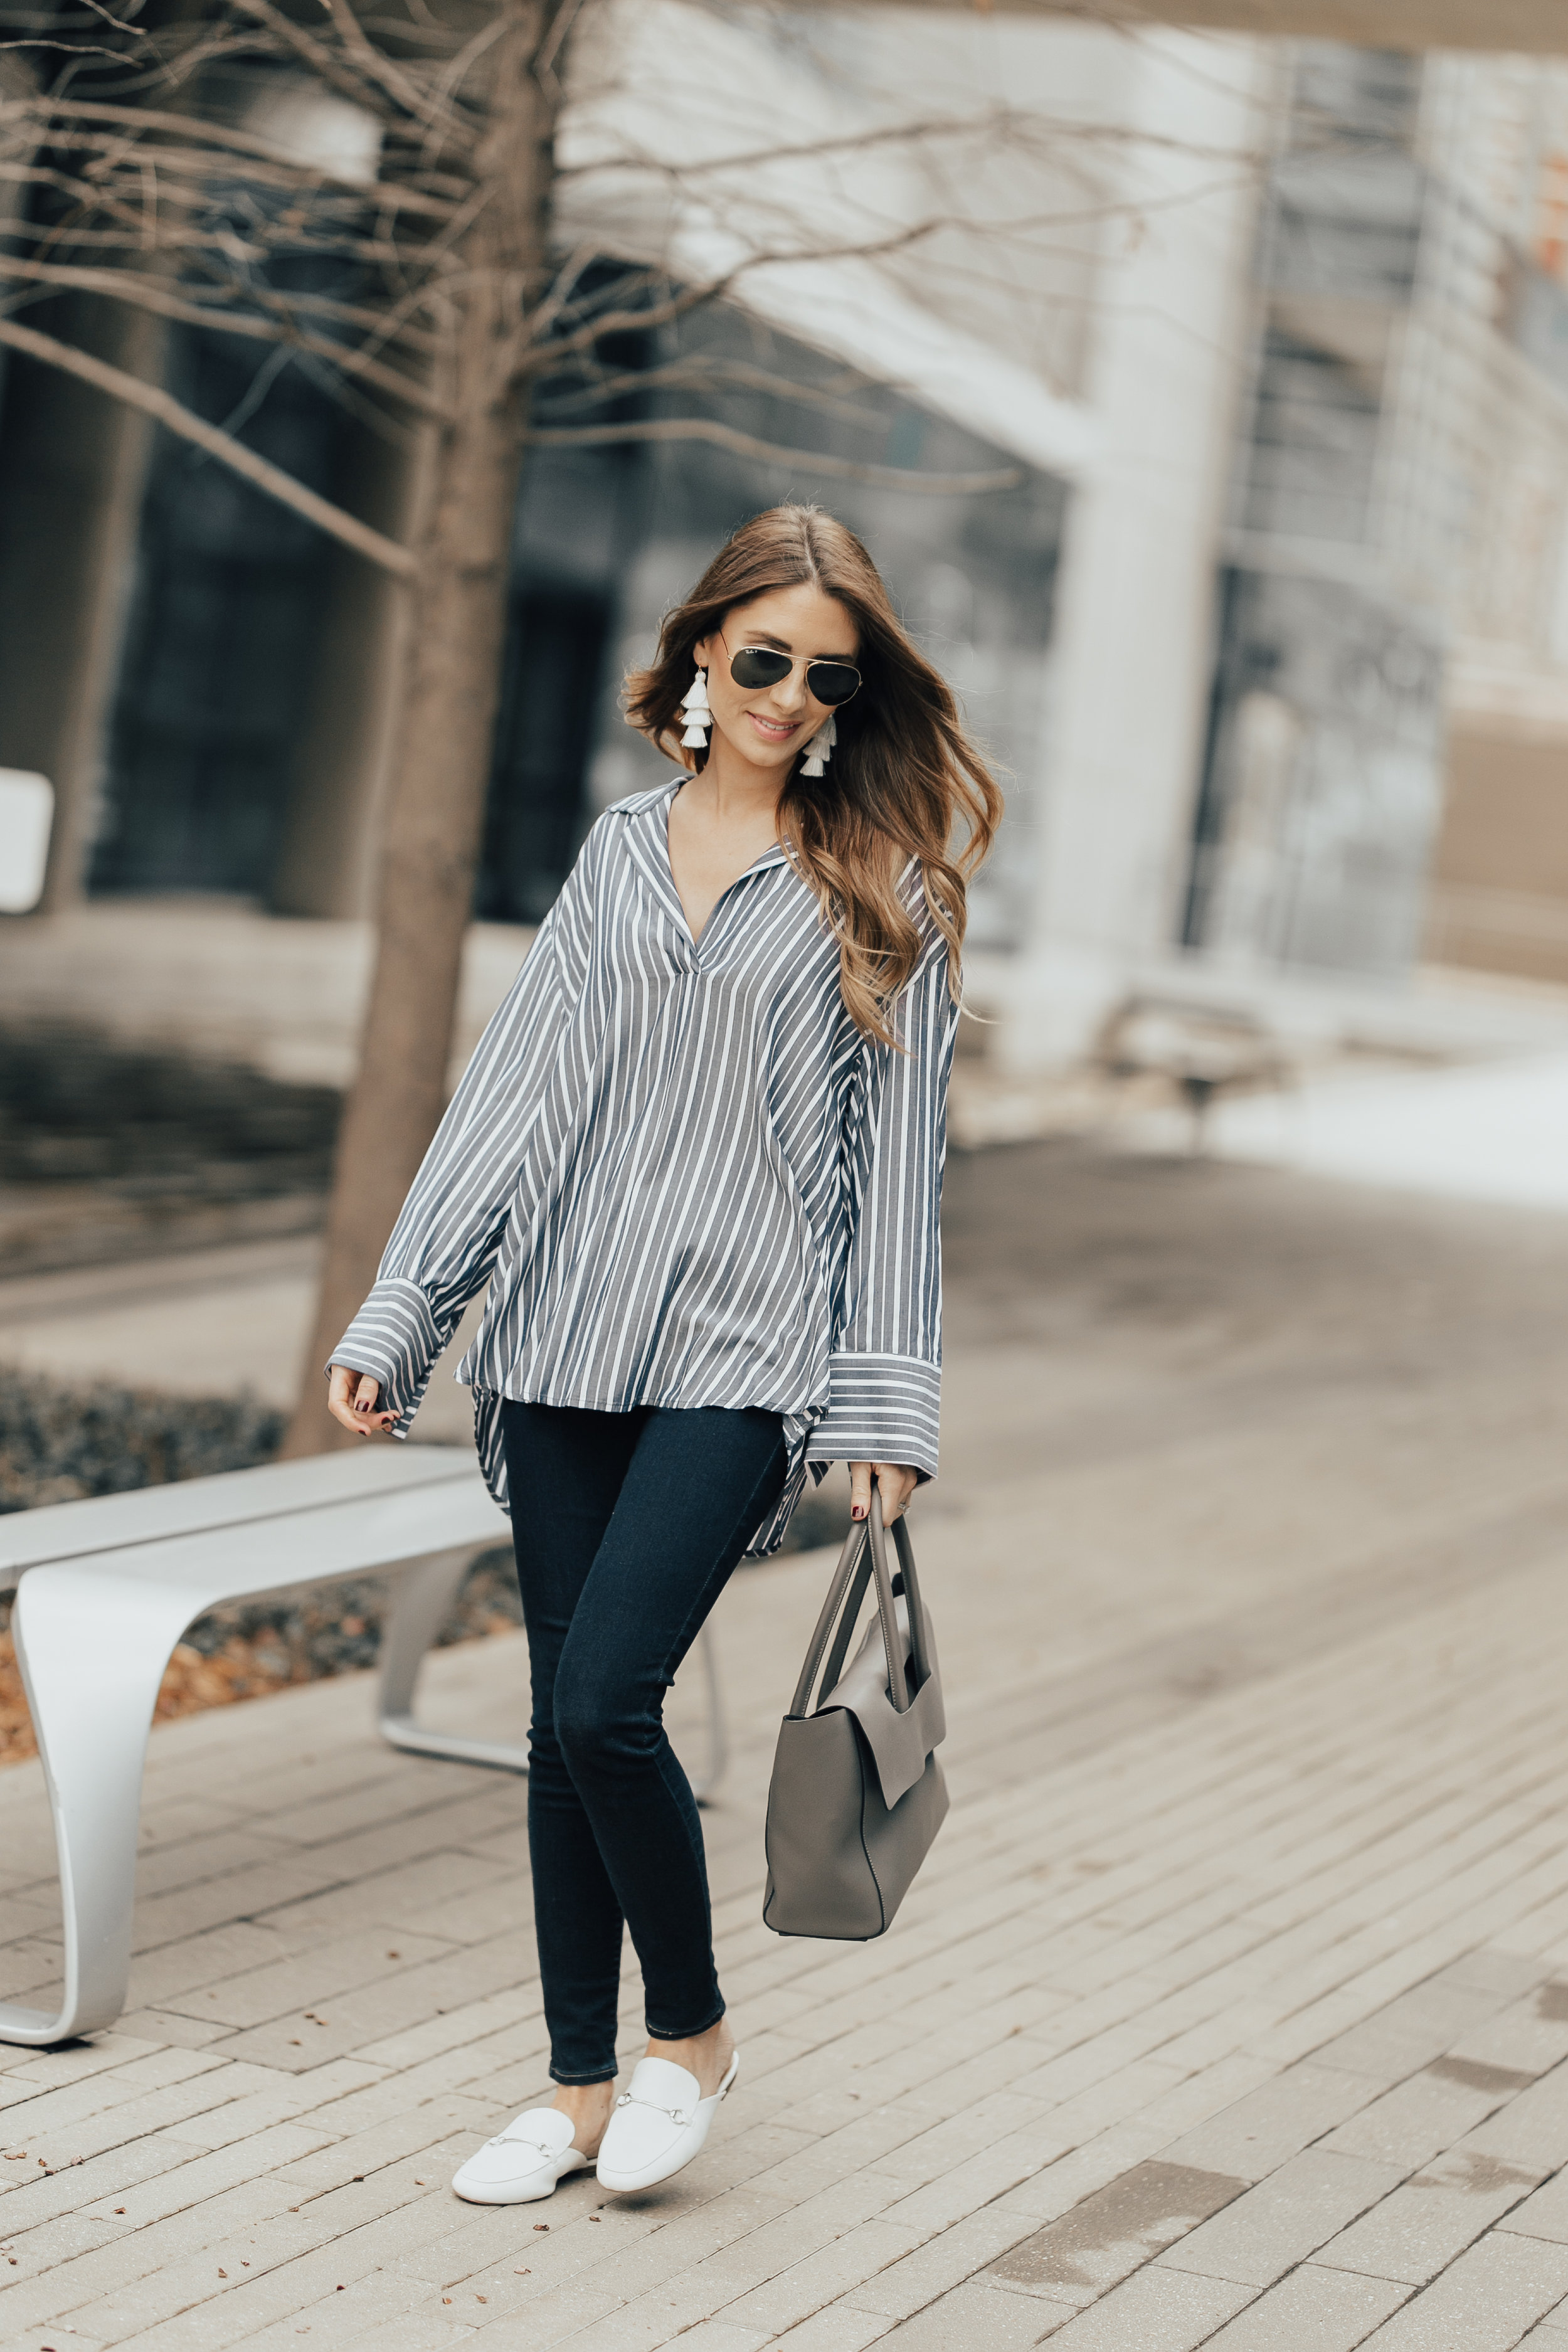 Striped Top + White Mules